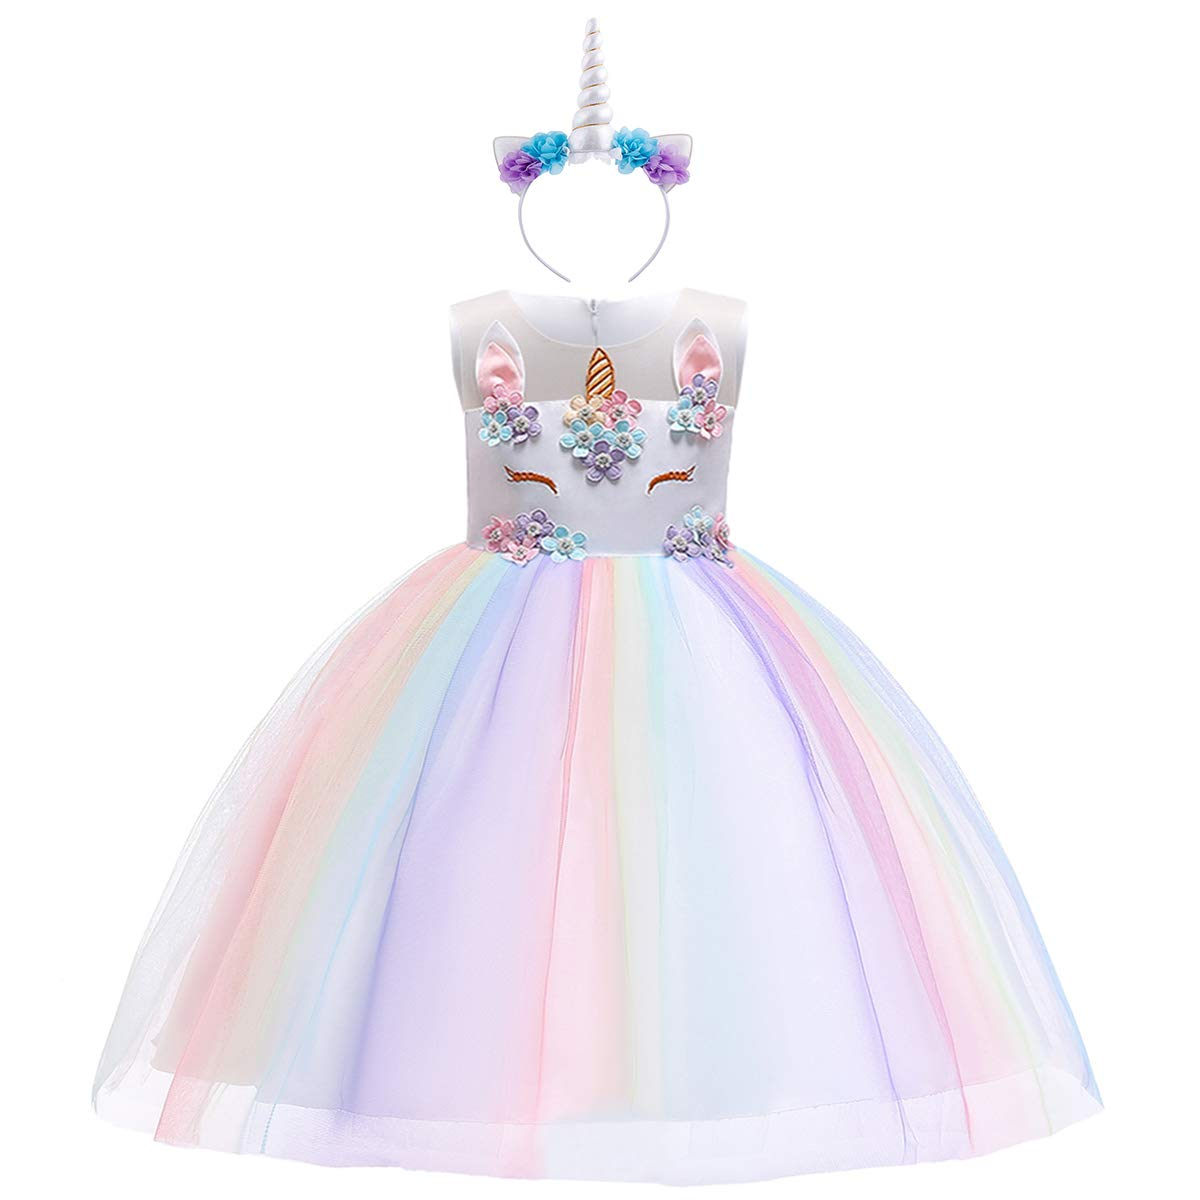 Baby Girls Flower Unicorn Fairy Costume Princess Rainbow Dress up Birthday Pageant Party Wedding Dance Outfits Short Gown S# White+Rainbow(2pcs) 6-7 Years